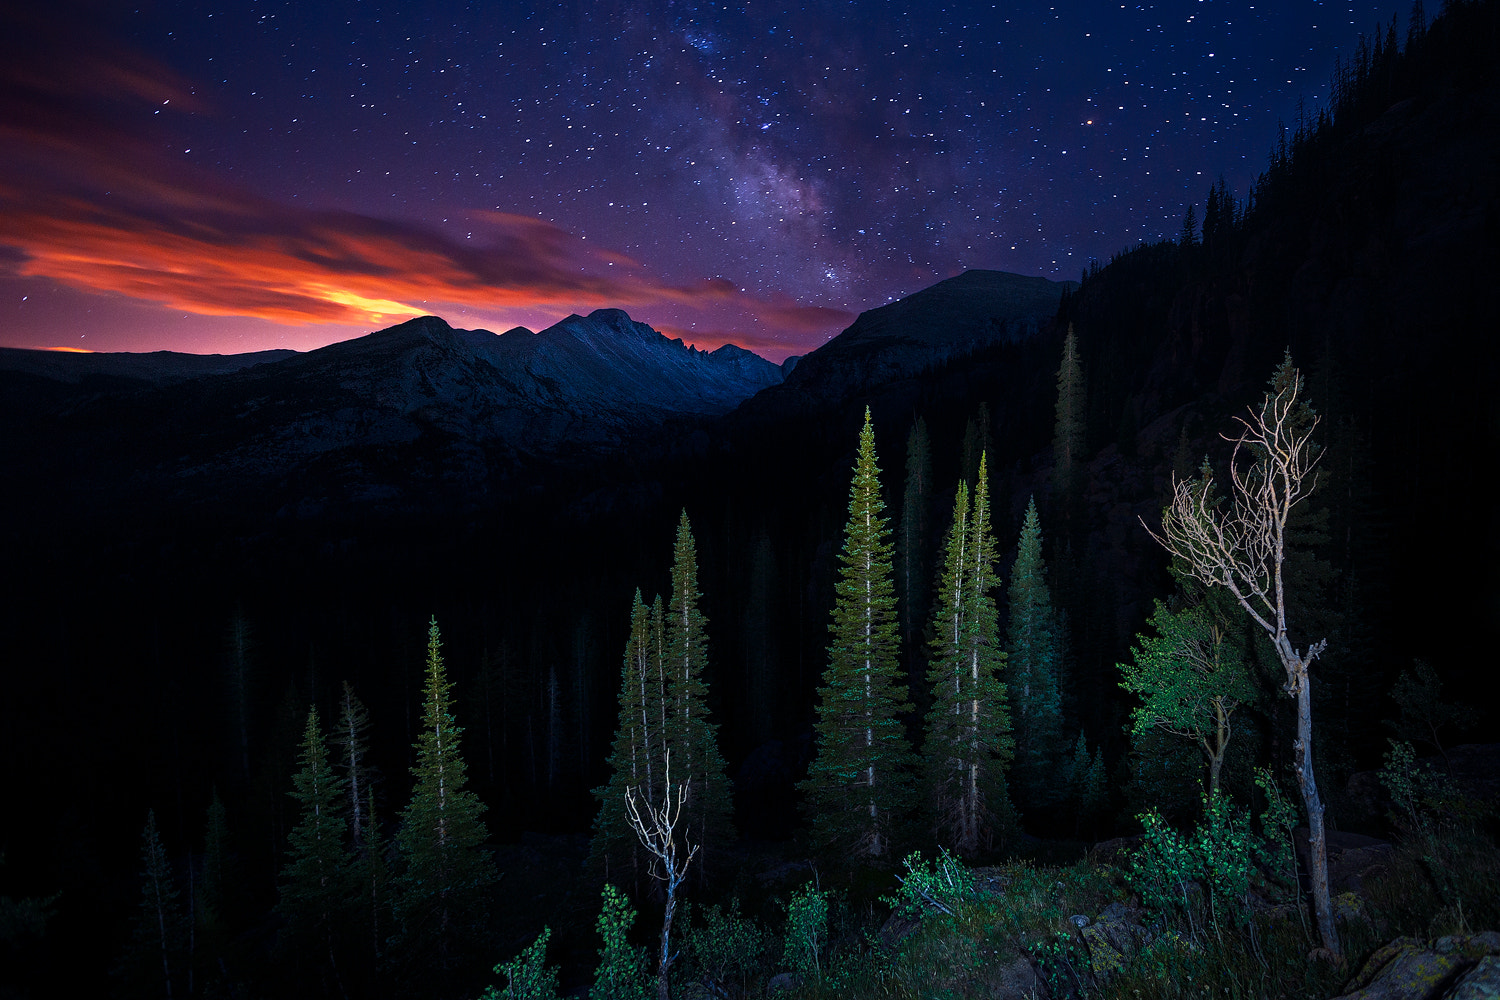 Photograph Elements of the Night by Paul James on 500px